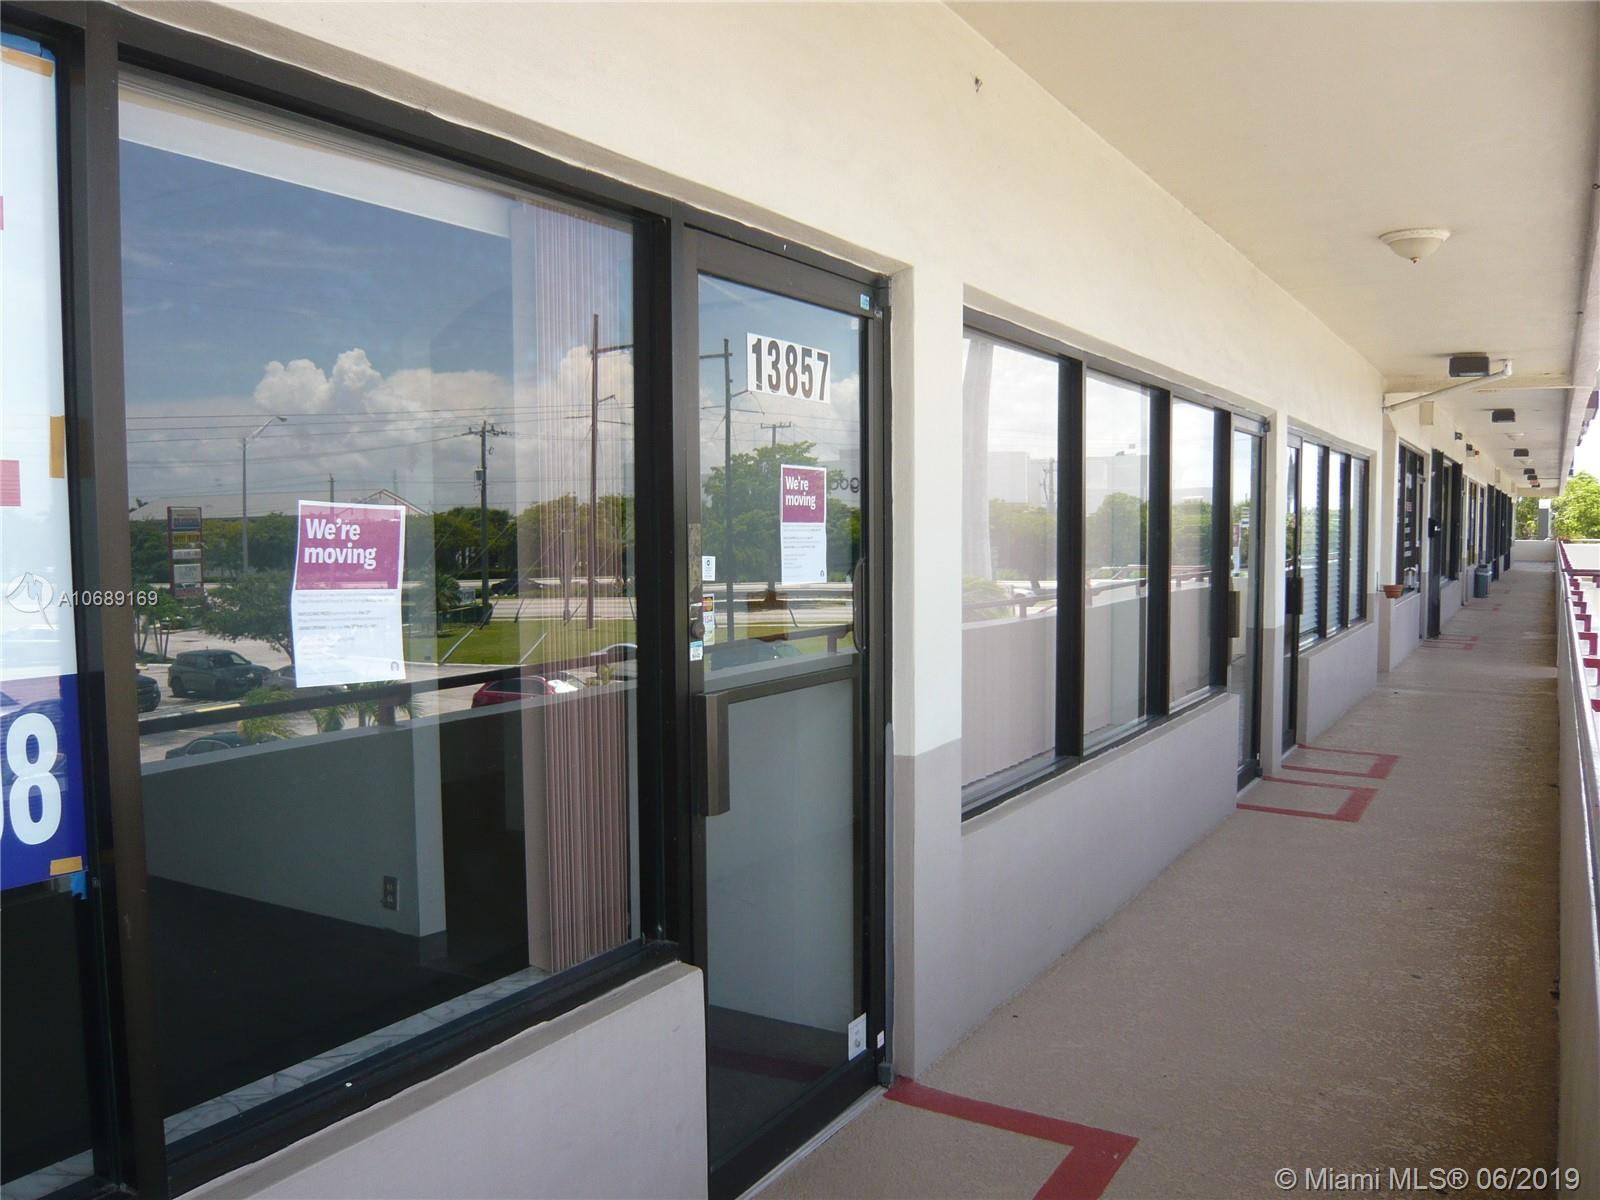 13857 S Dixie Highway  For Sale A10689169, FL